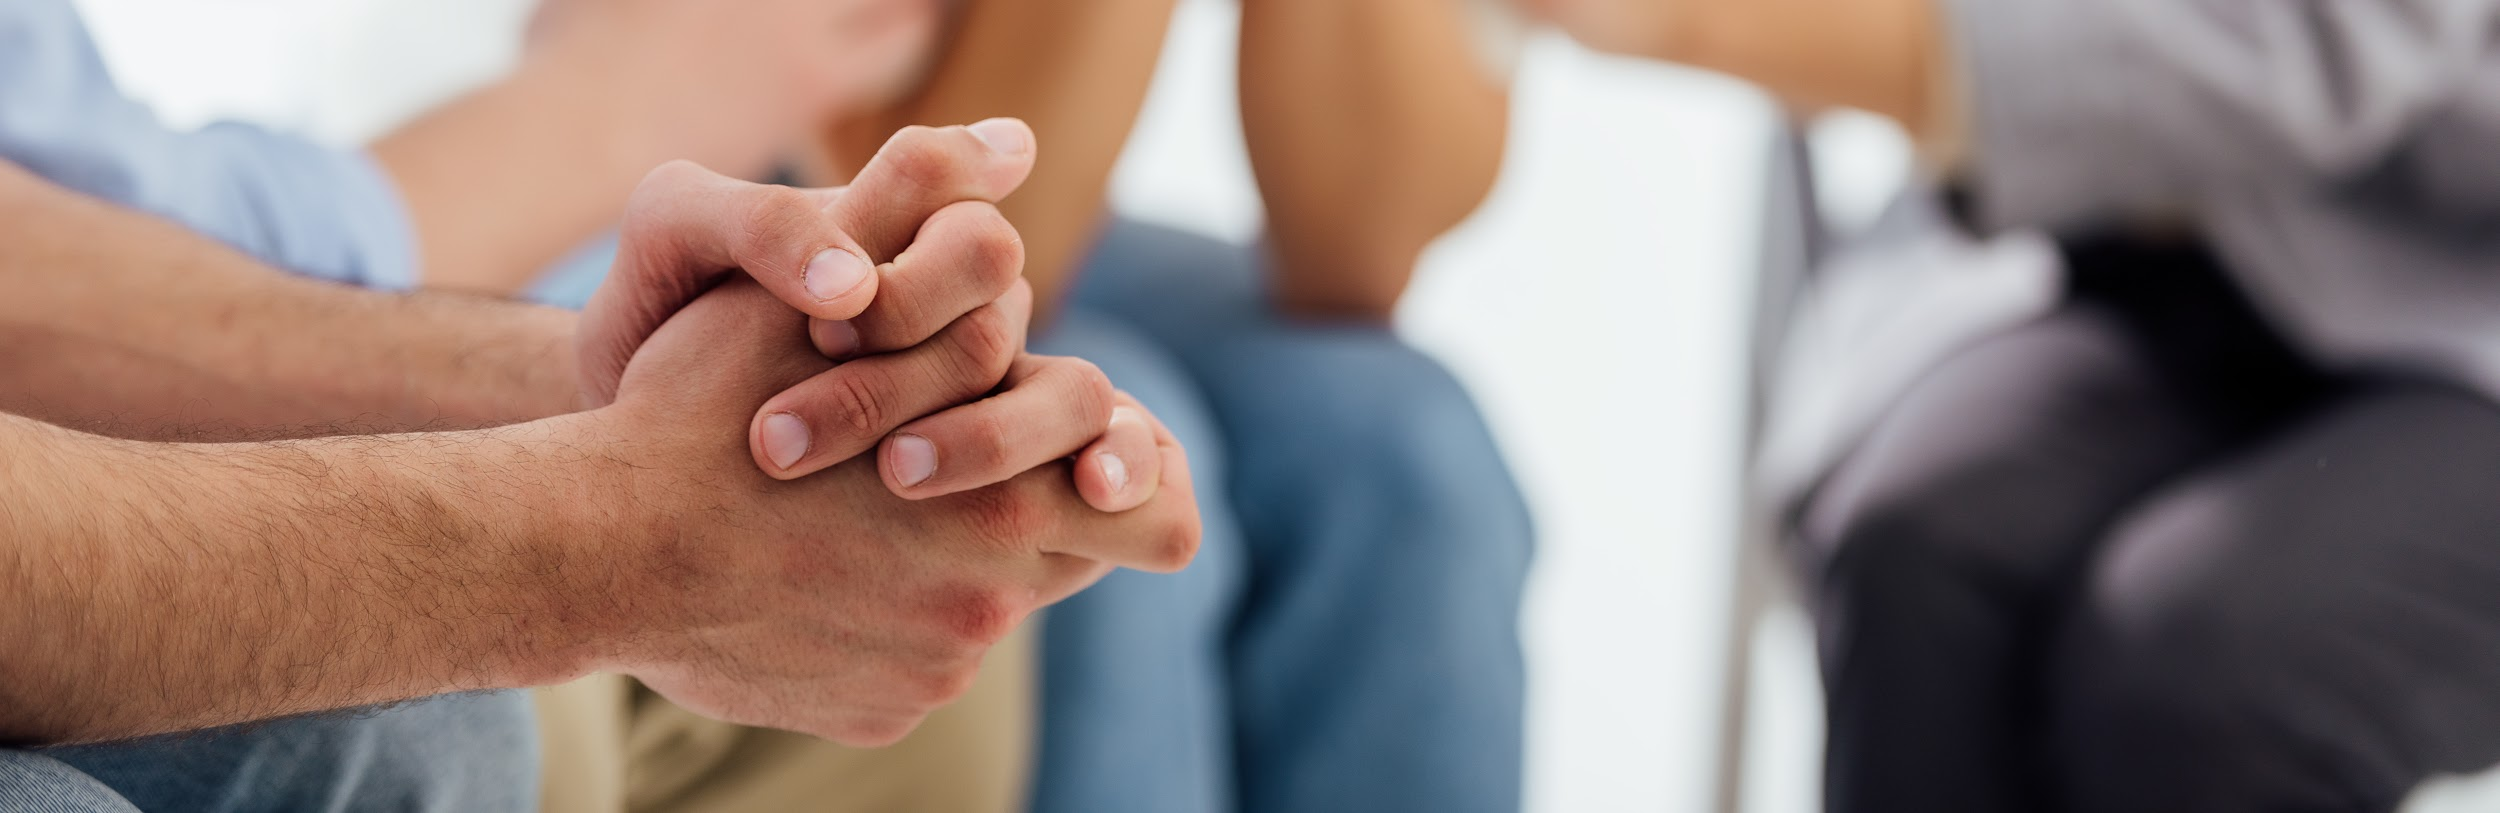 panoramic shot of hands of man during group therapy session